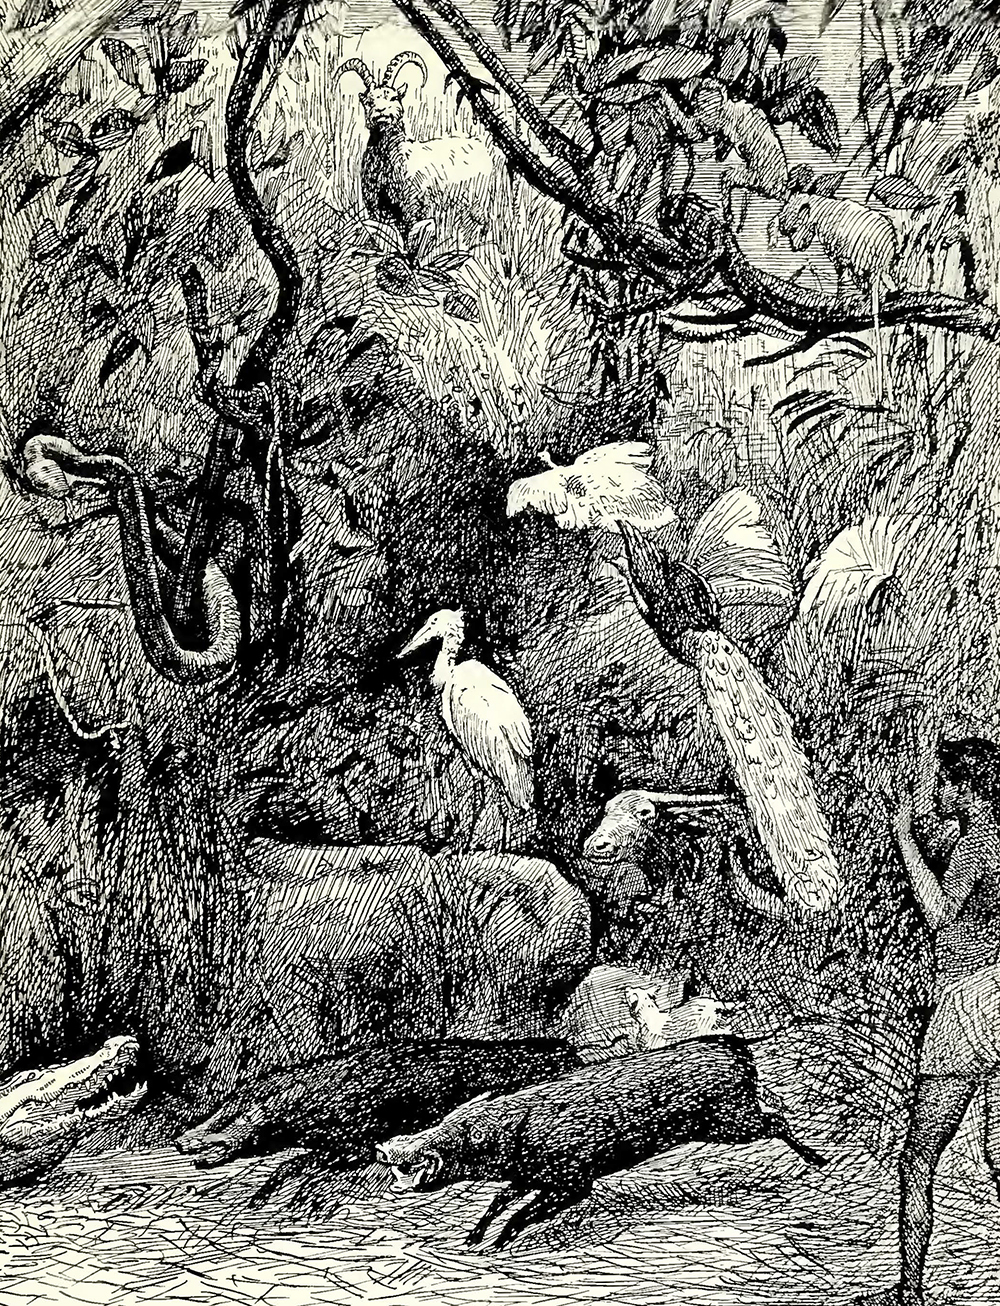 'Indian Jungle Life' – a sketch of Rowland Ward's 'Jungle' display in Cundall's Reminiscences of the Colonial and Indian Exhibition, 1886.